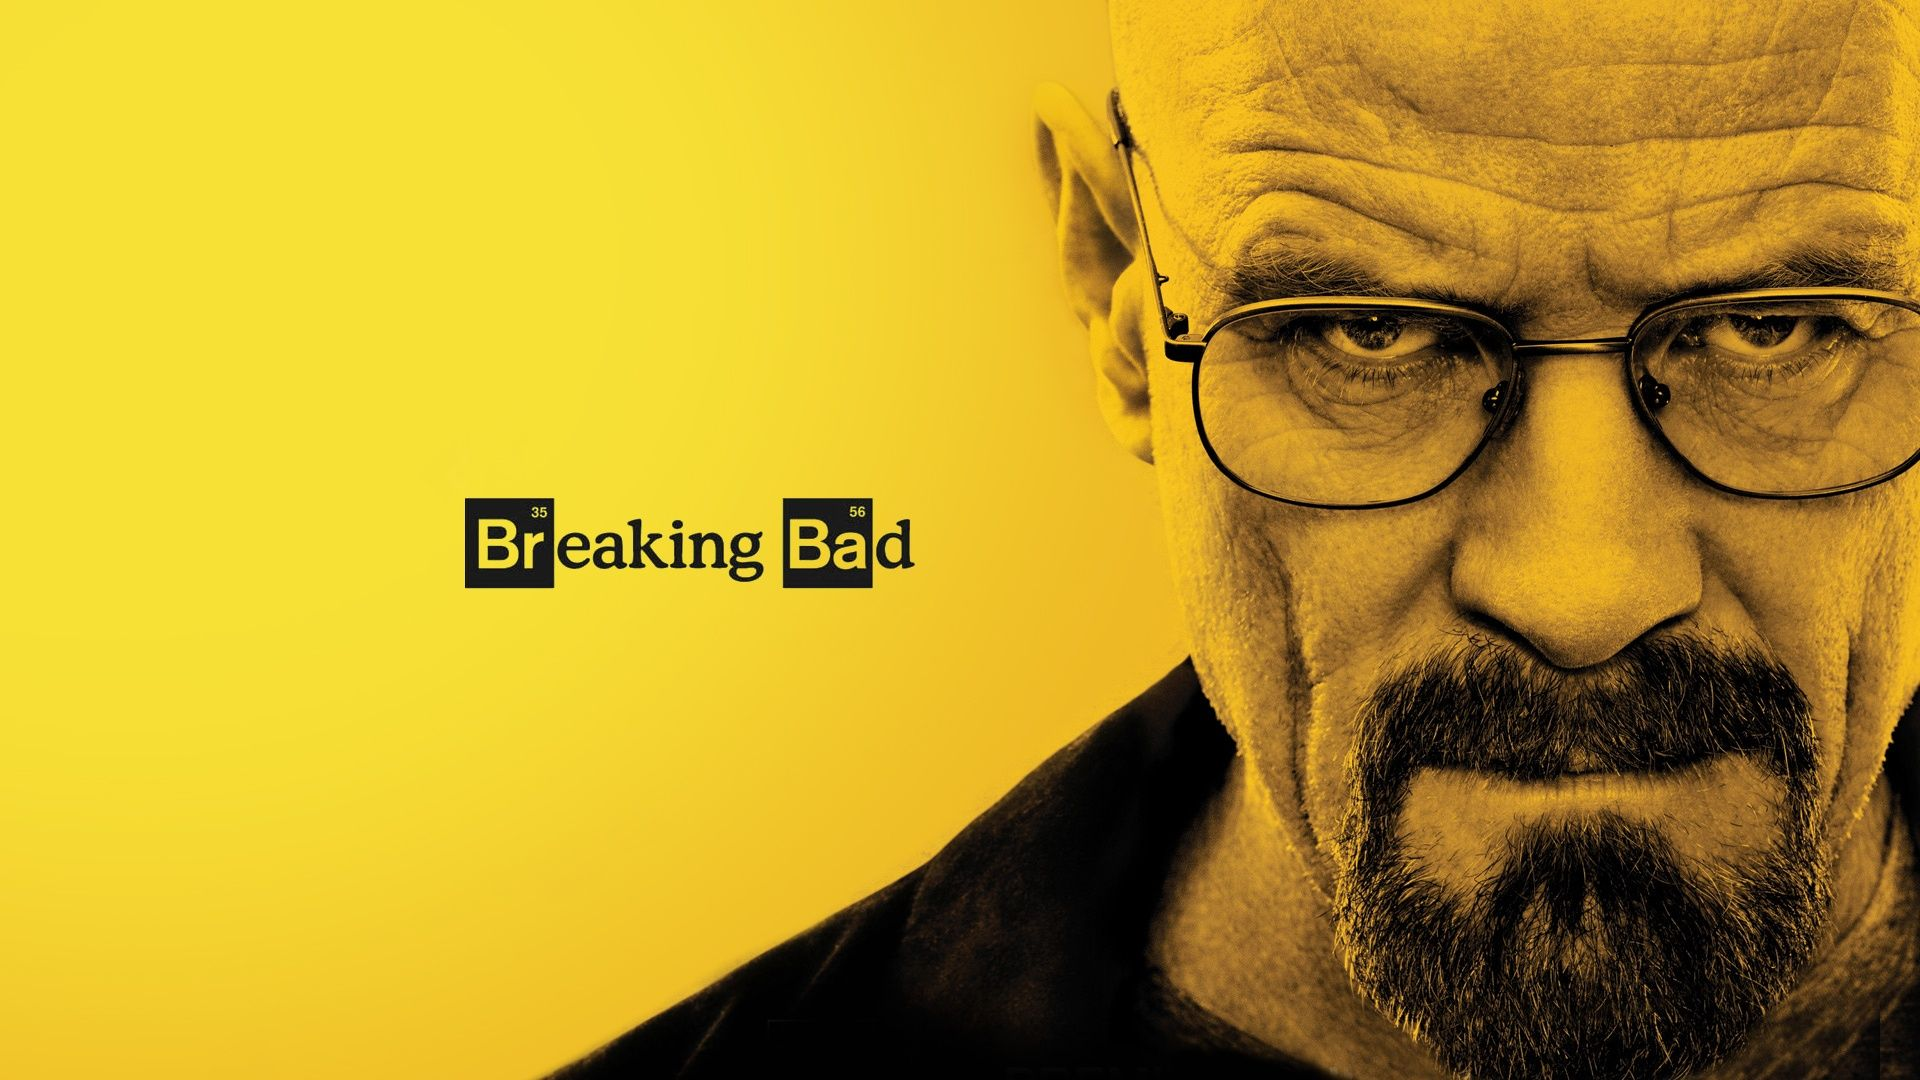 breaking bad is over and walter whites fate is revealed many had their expectations and leading up to the finale triyng to decipher the title felina